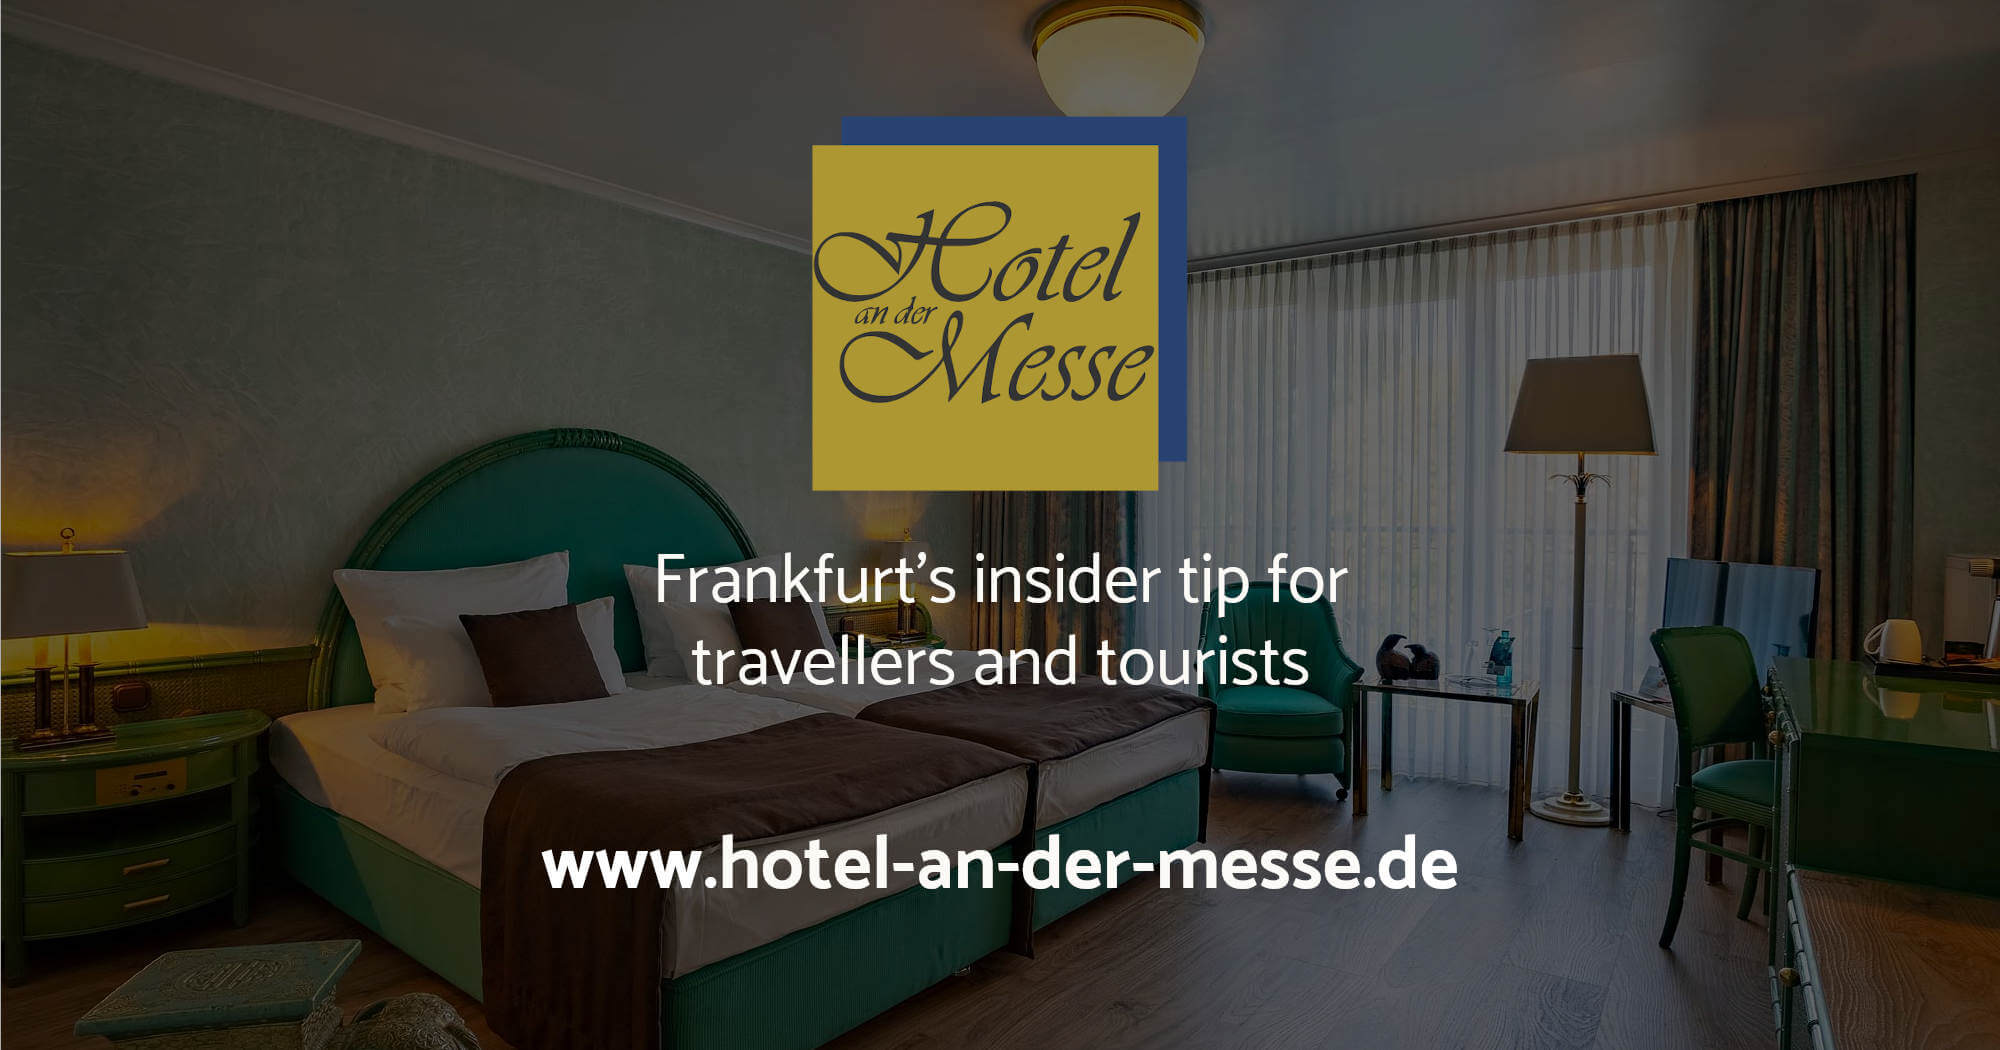 OpenGraph: Facebook | Hotel an der Messe | Frankfurt's insider tip · Business · Leisure